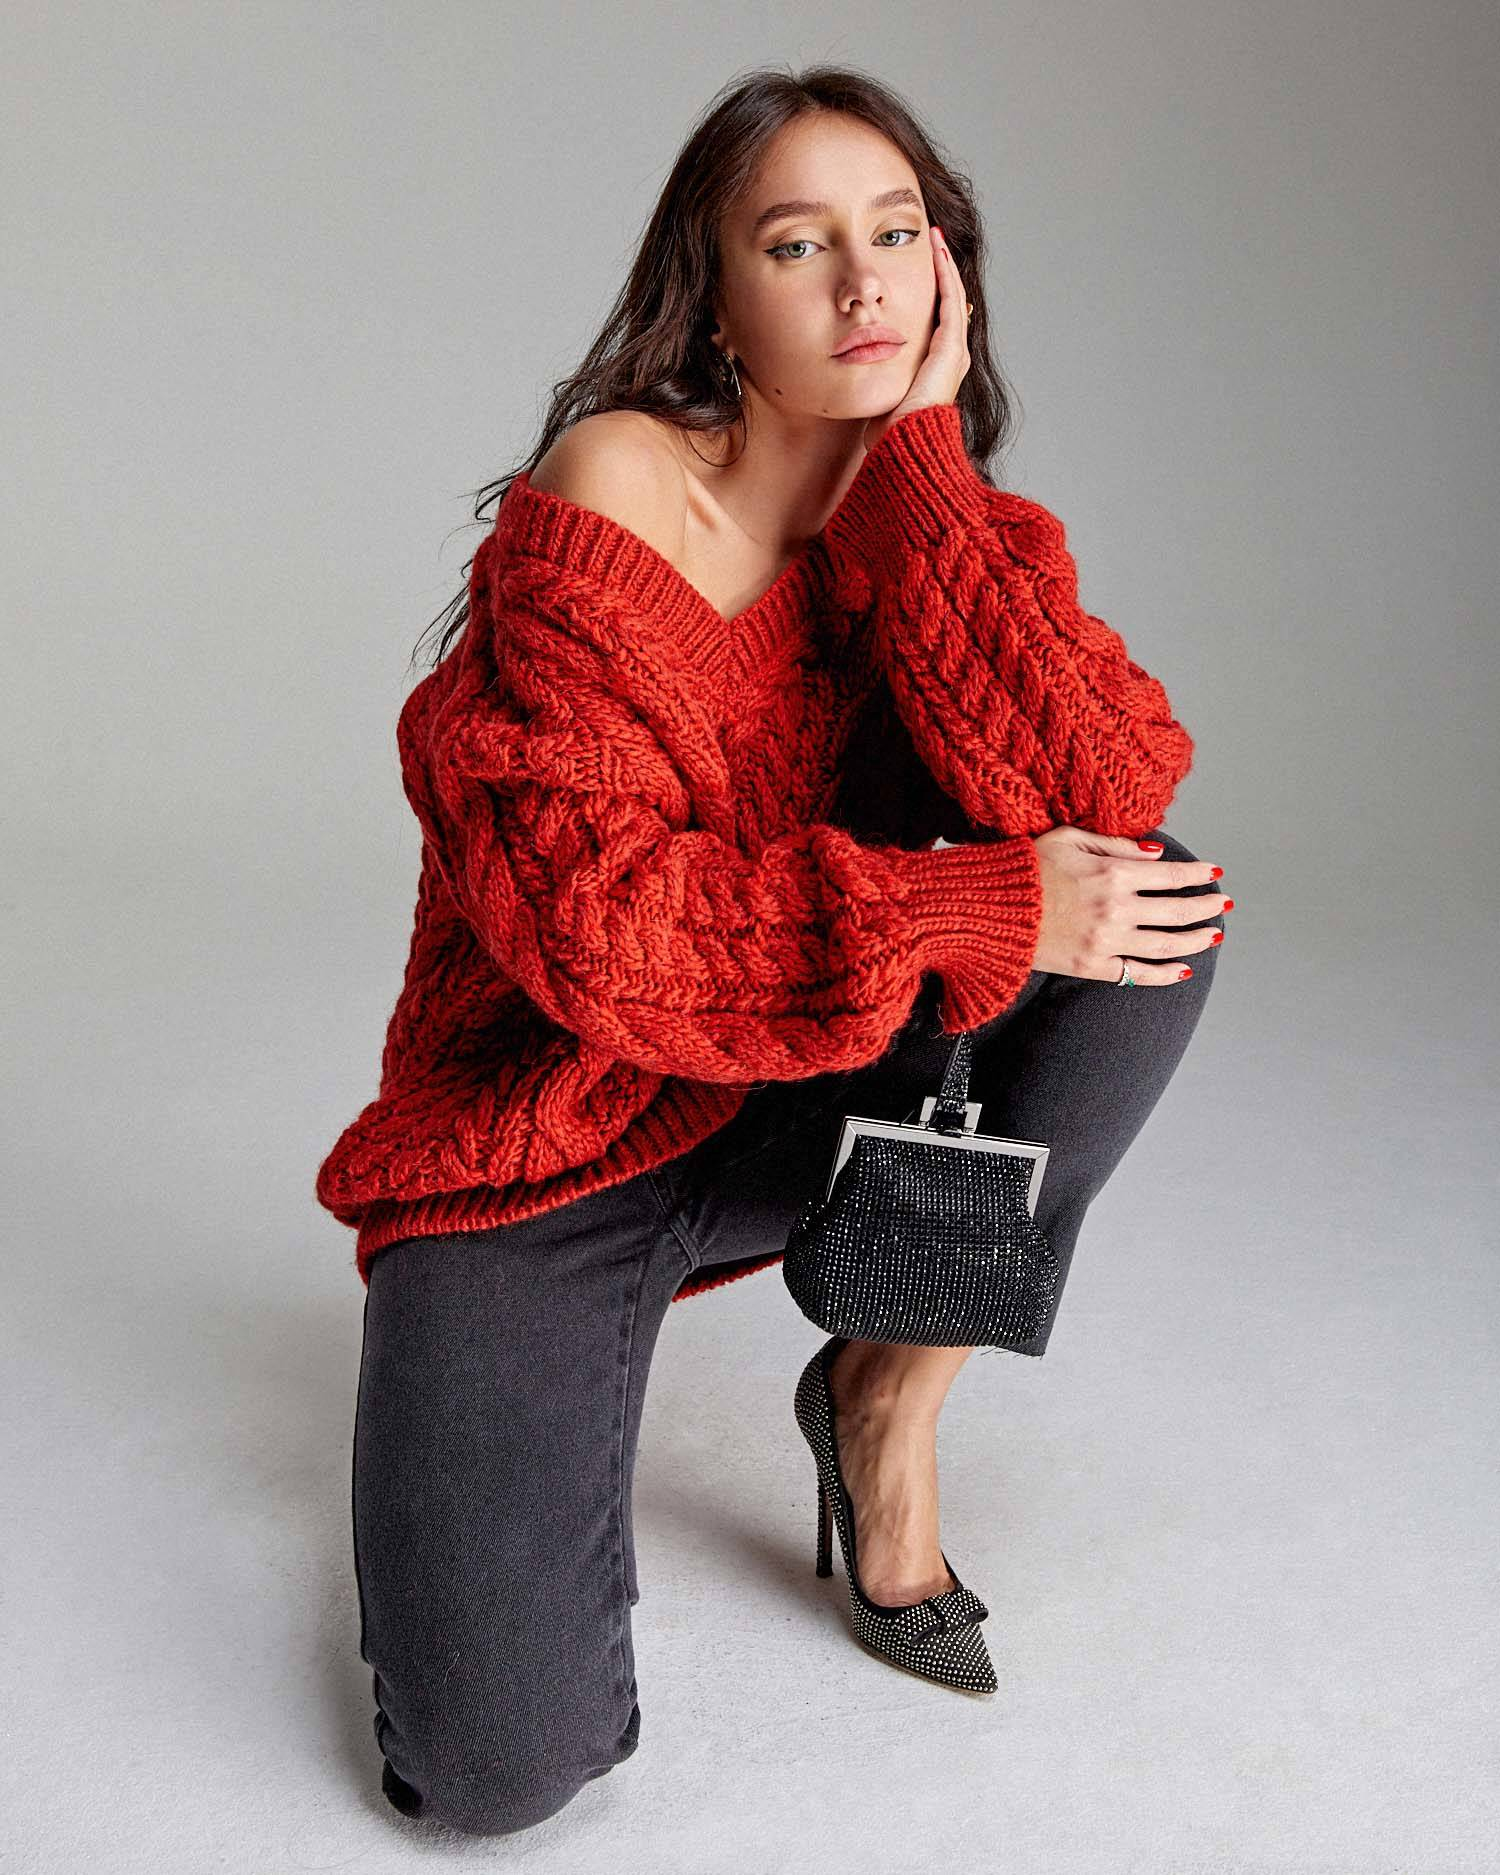 Braided oversize sweater